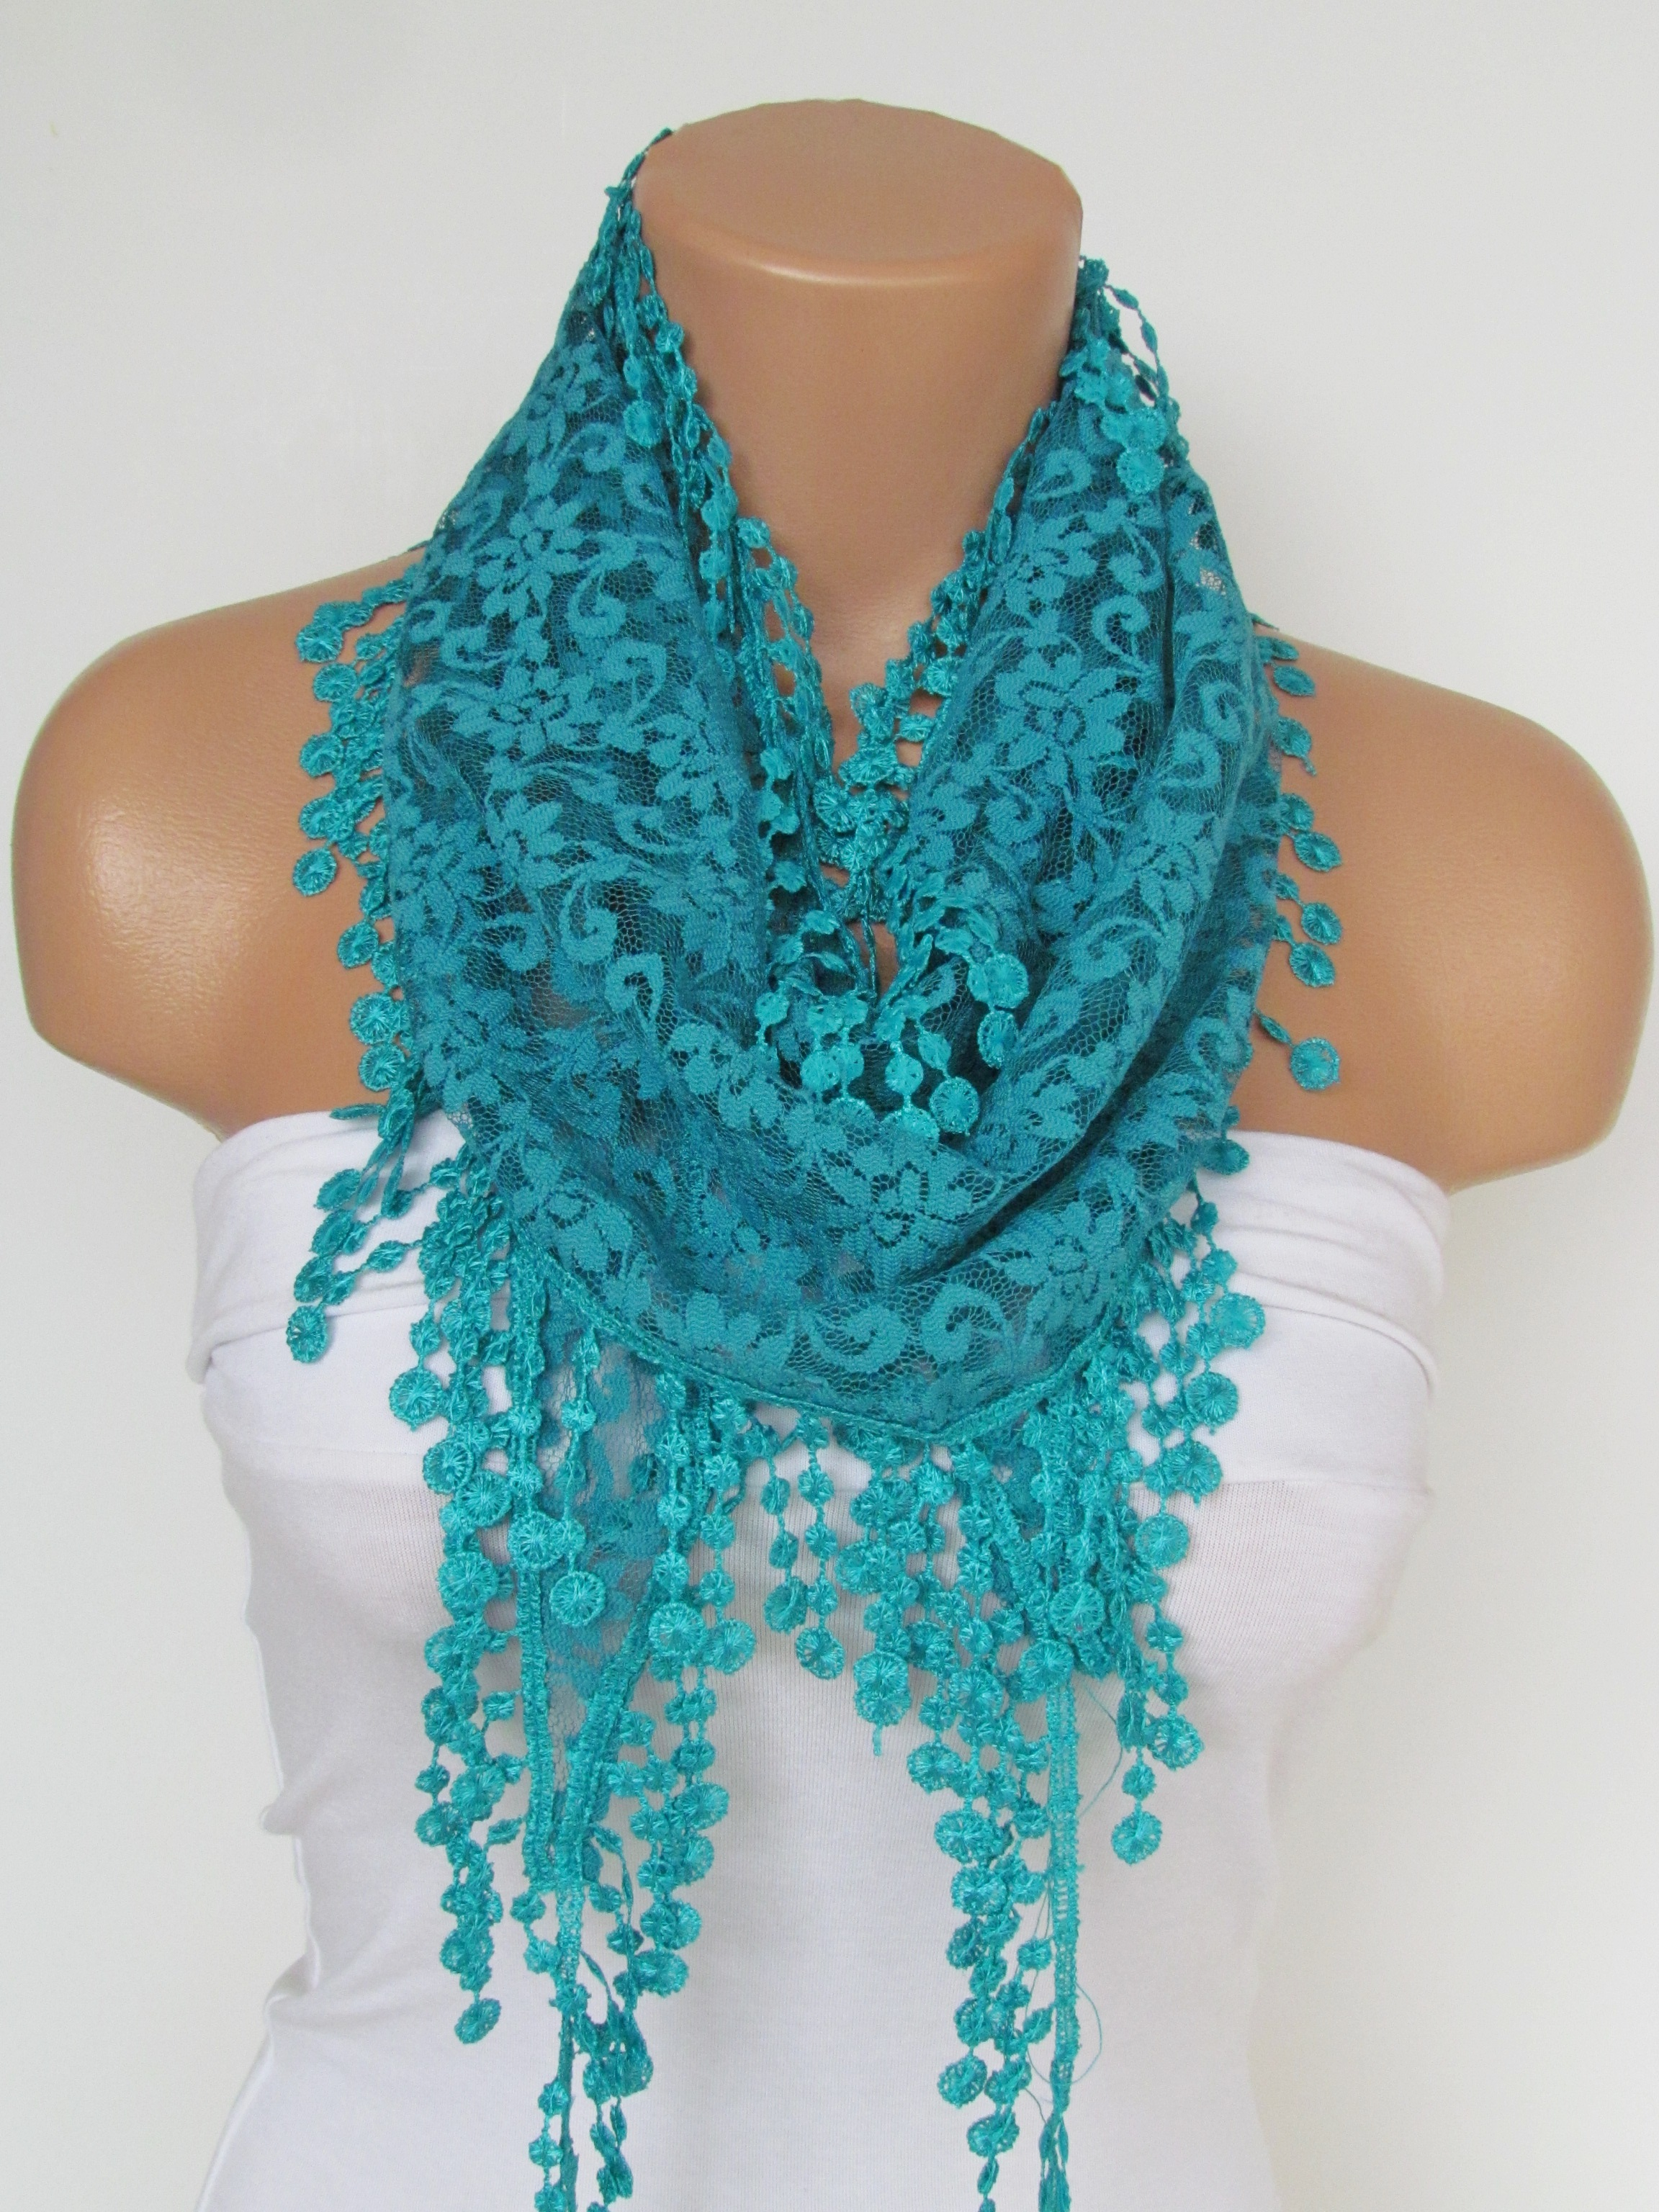 36b4823320be5 Turquoise Lace Scarf With Fringe-Fall Fashion Scarf-Headband-Necklace- Infinity  Scarf-New Season Acc on Luulla